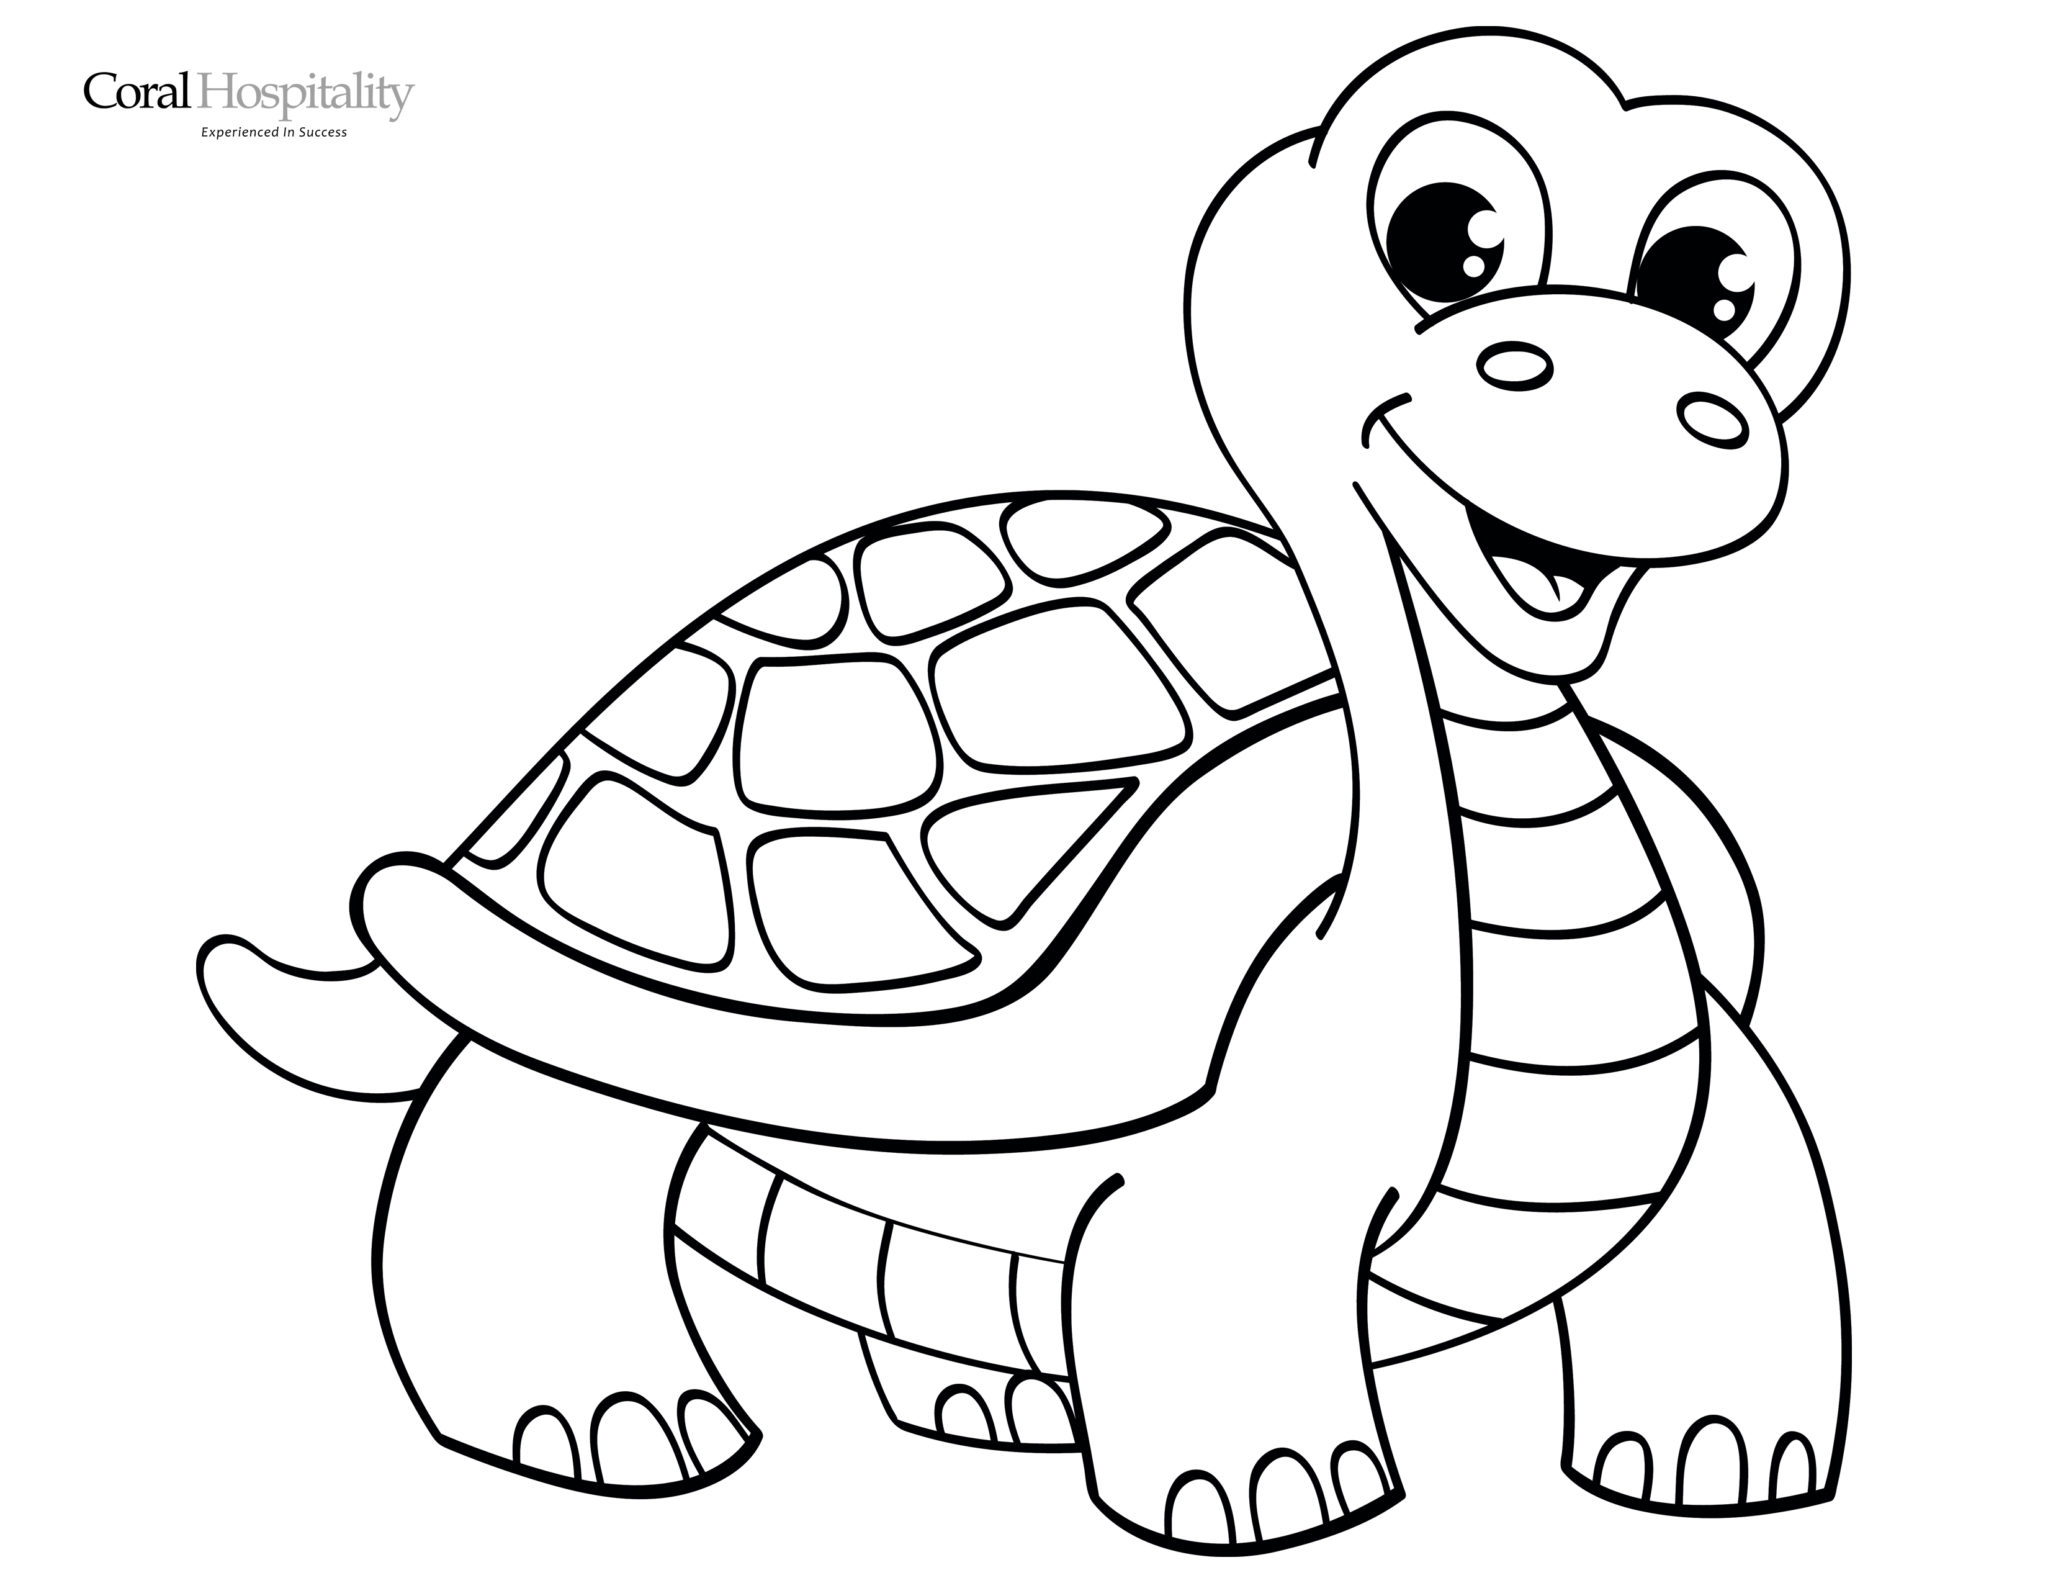 Coloring Pages Activities Brasstown Valley Resort Spa Young Harris Ga